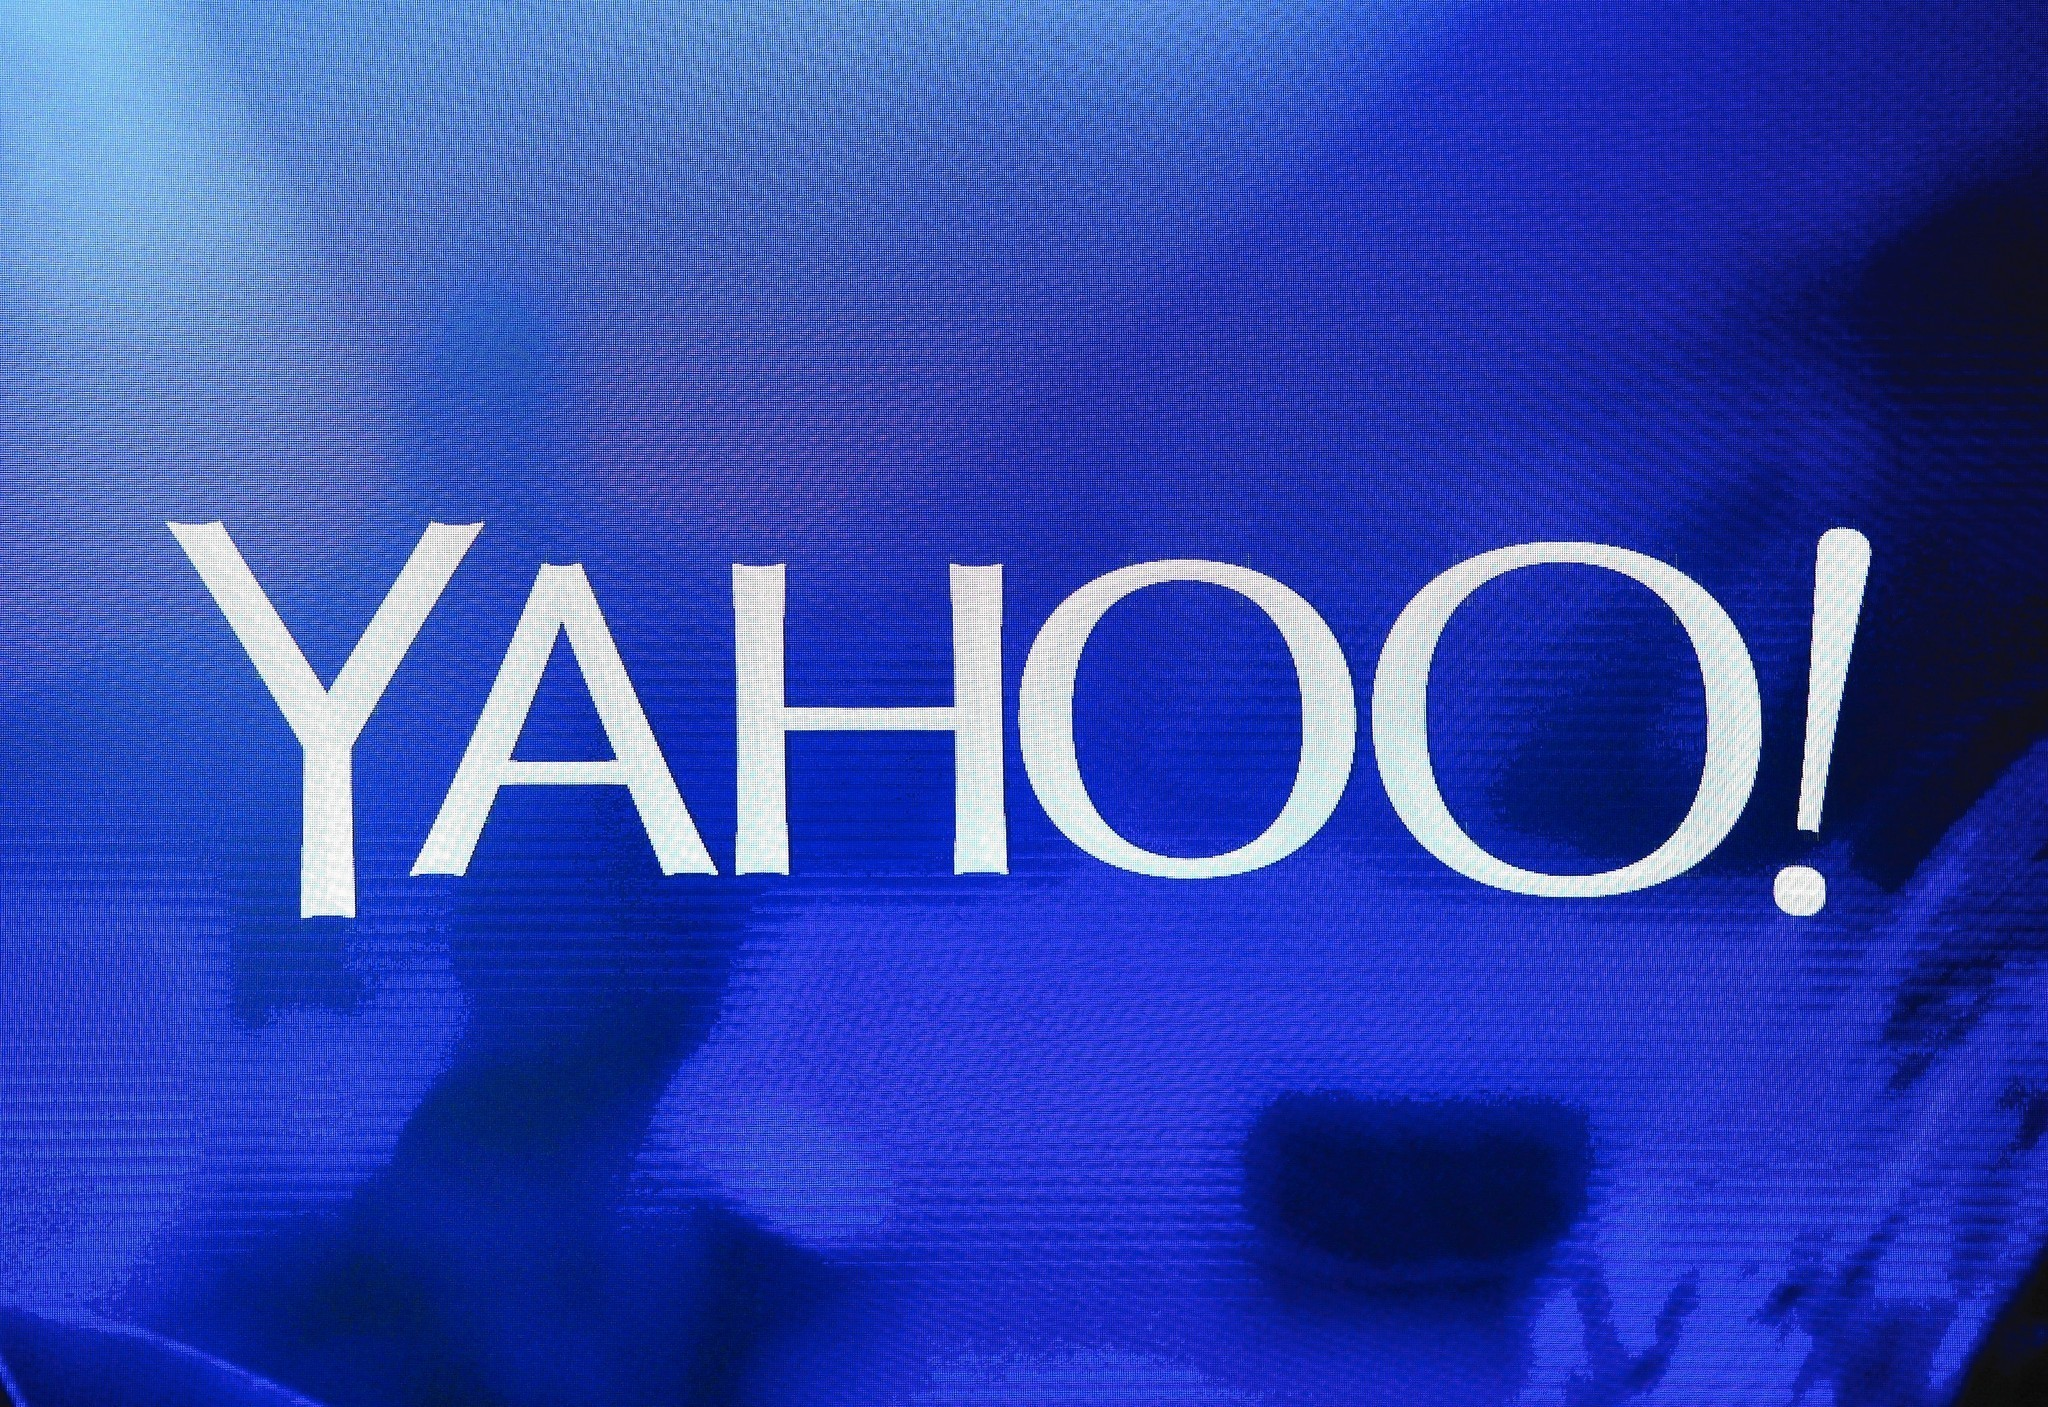 Yahoo to spin off Alibaba stake into a separate company